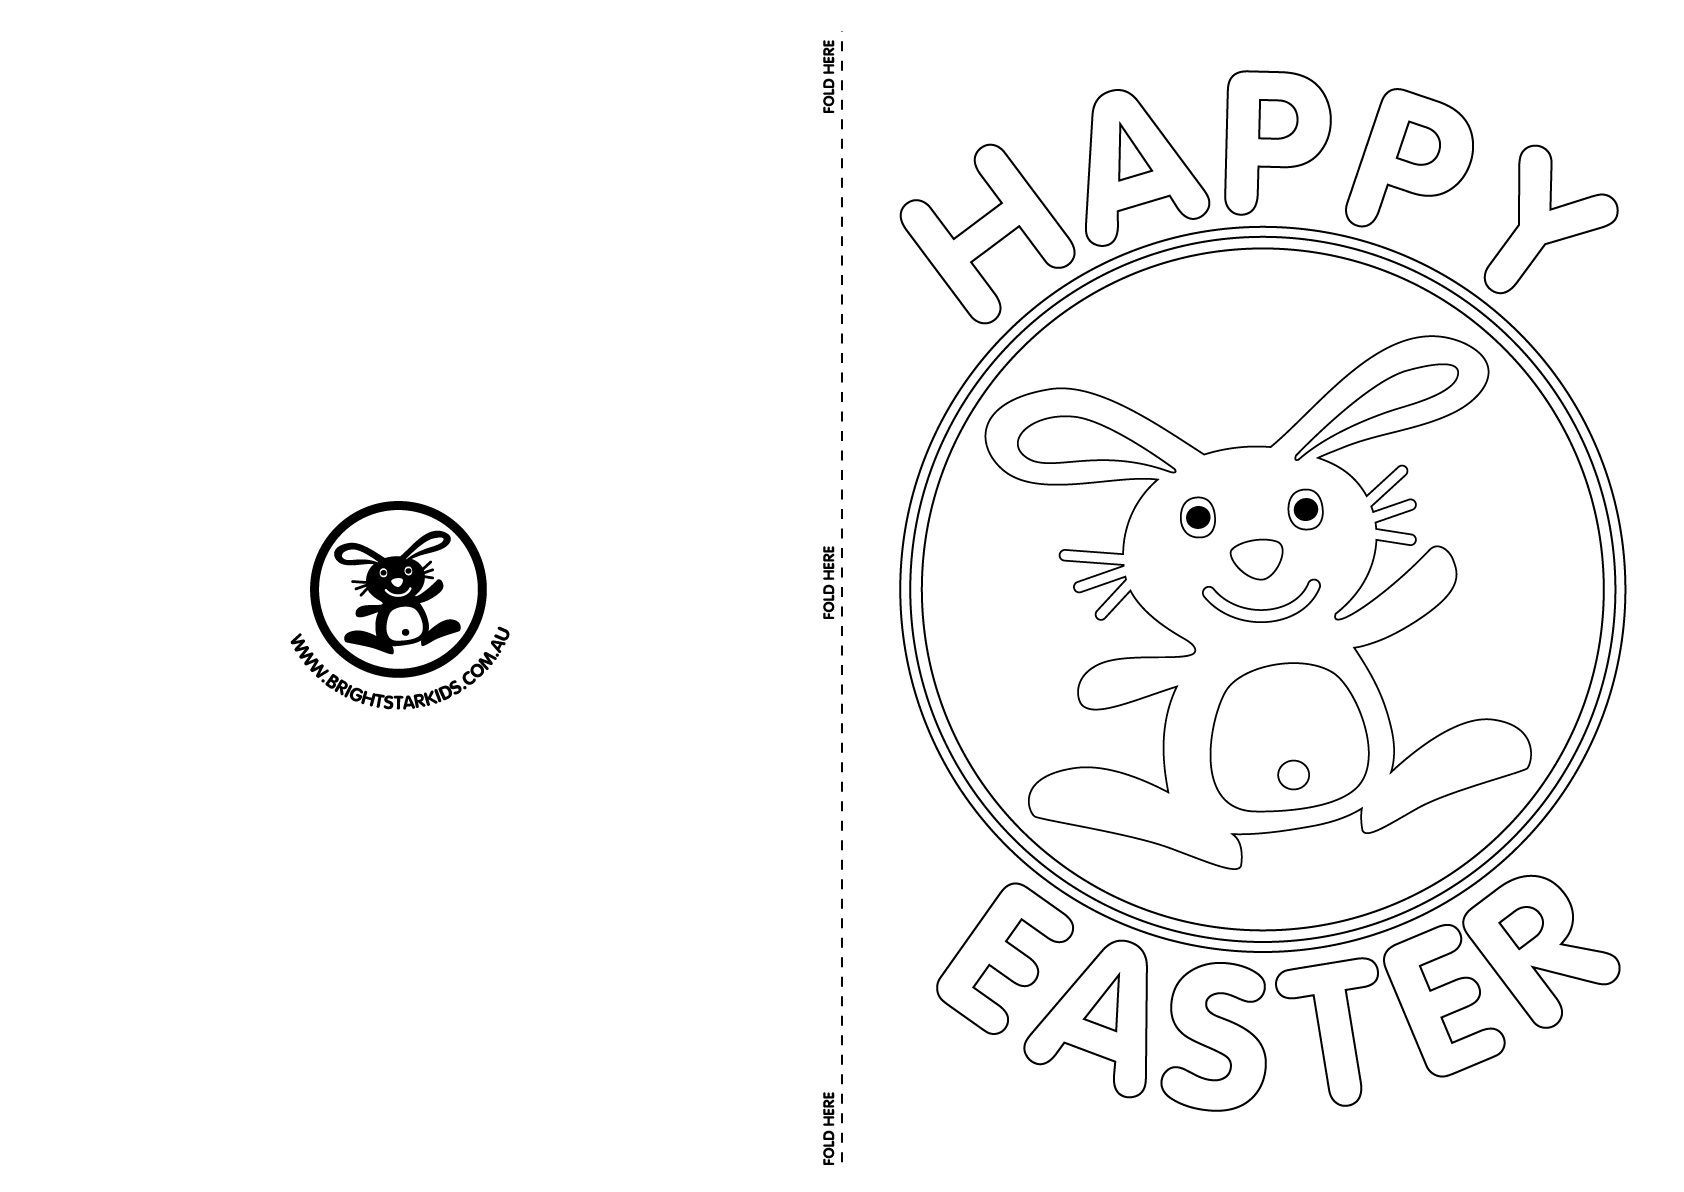 Free Printable Easter Cards Templates – Happy Easter & Thanksgiving 2018 - Free Printable Easter Cards To Print